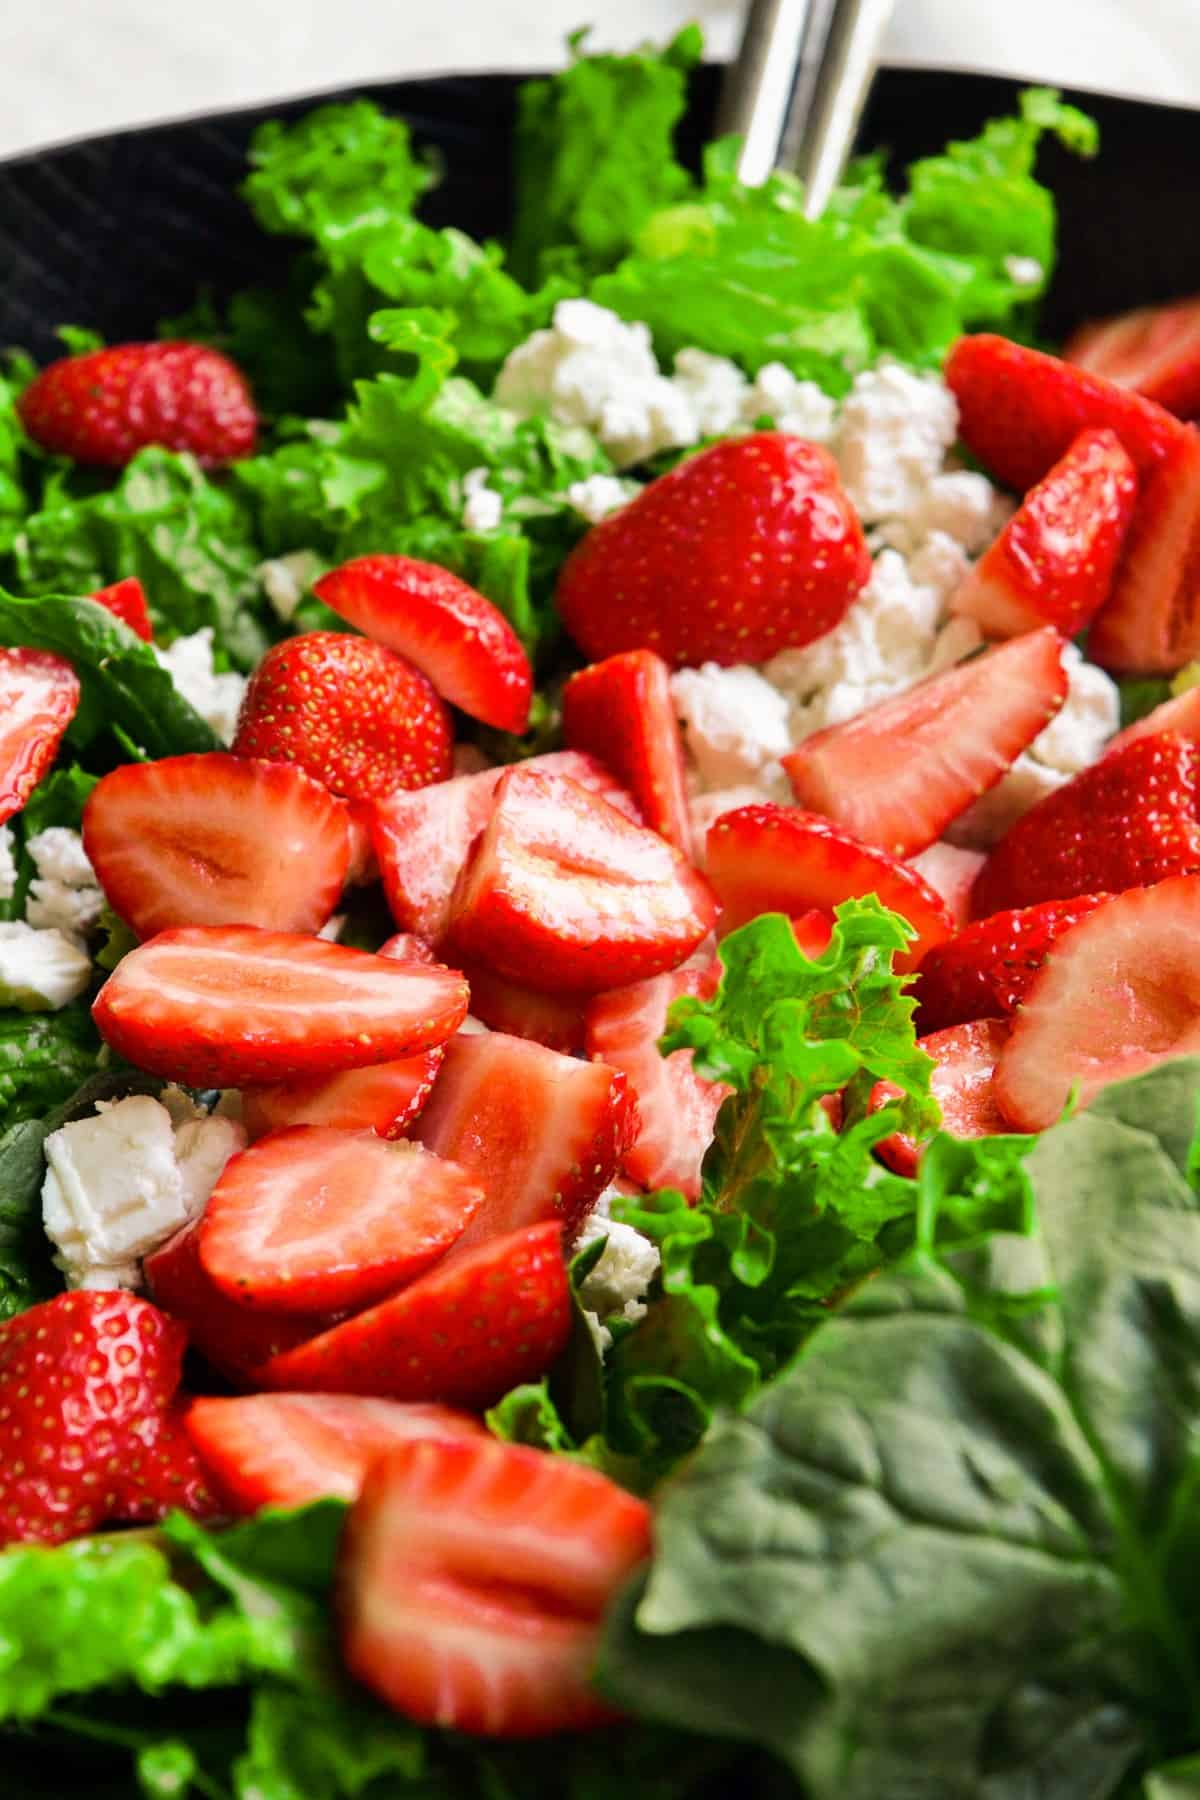 mixed greens, strawberries, and feta cheese